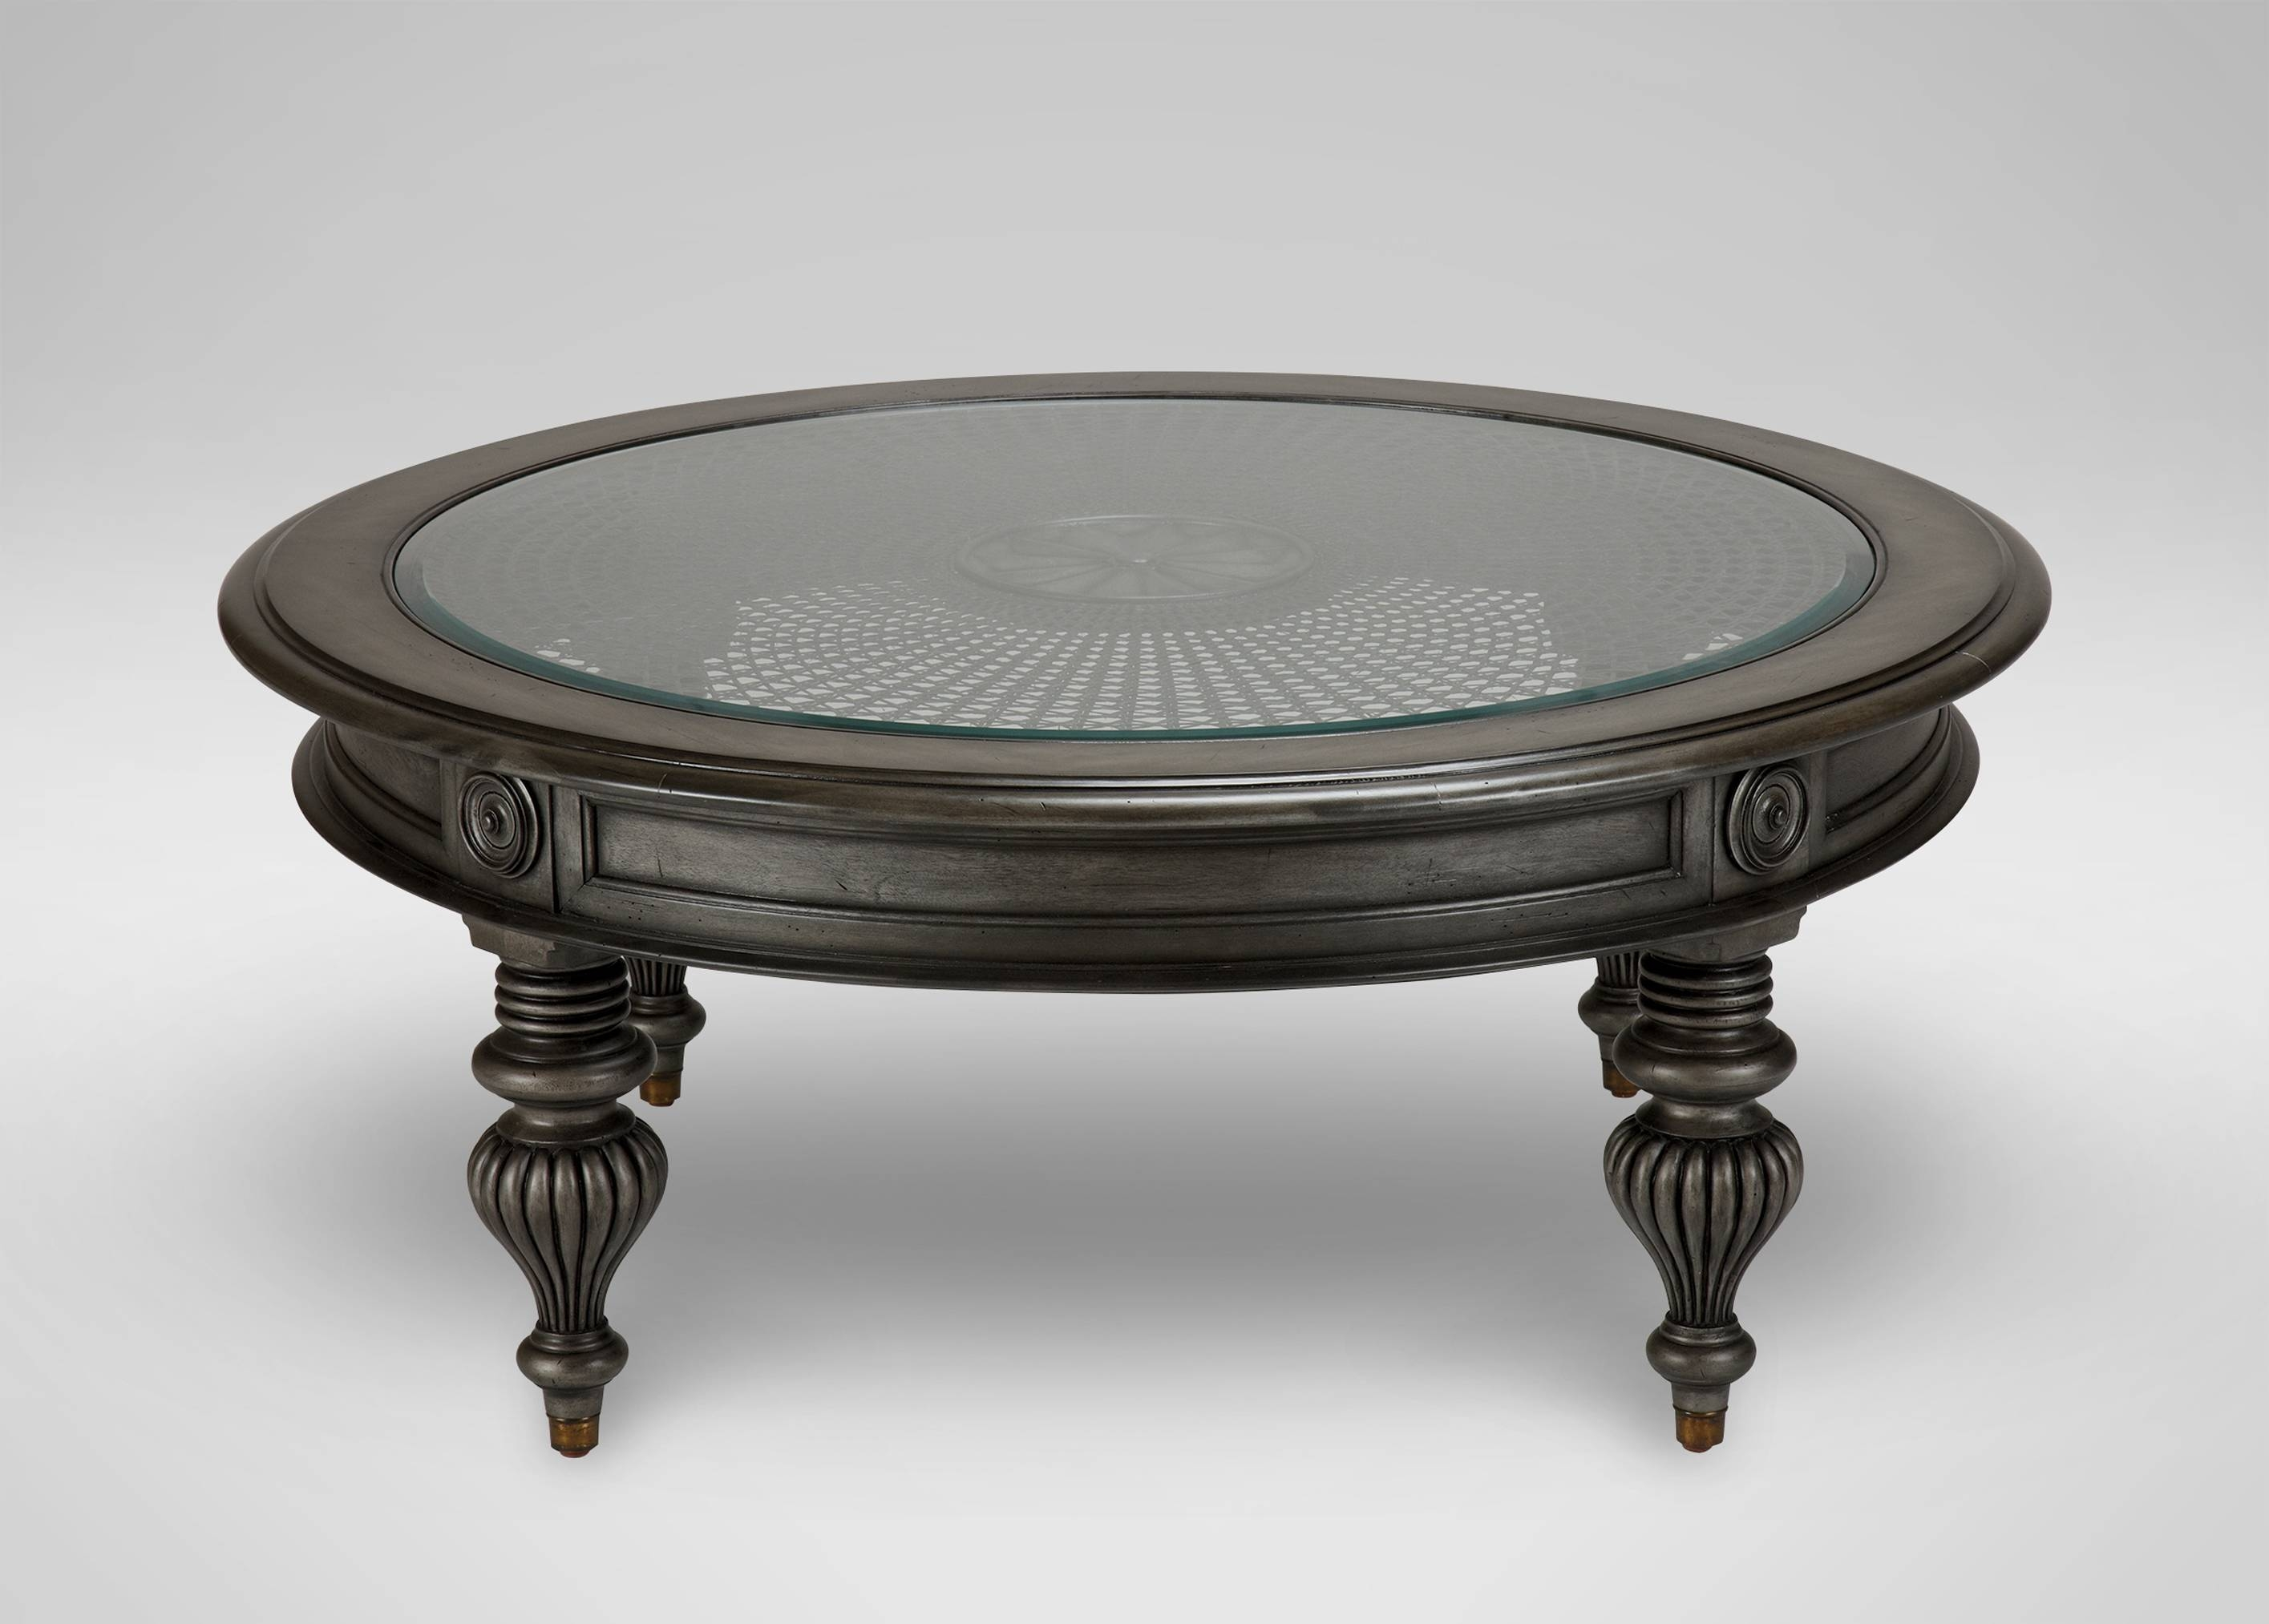 Table : Enchanting Oval Coffee Tables Glass Acrylic And Metal intended for Black Oval Coffee Table (Image 27 of 30)